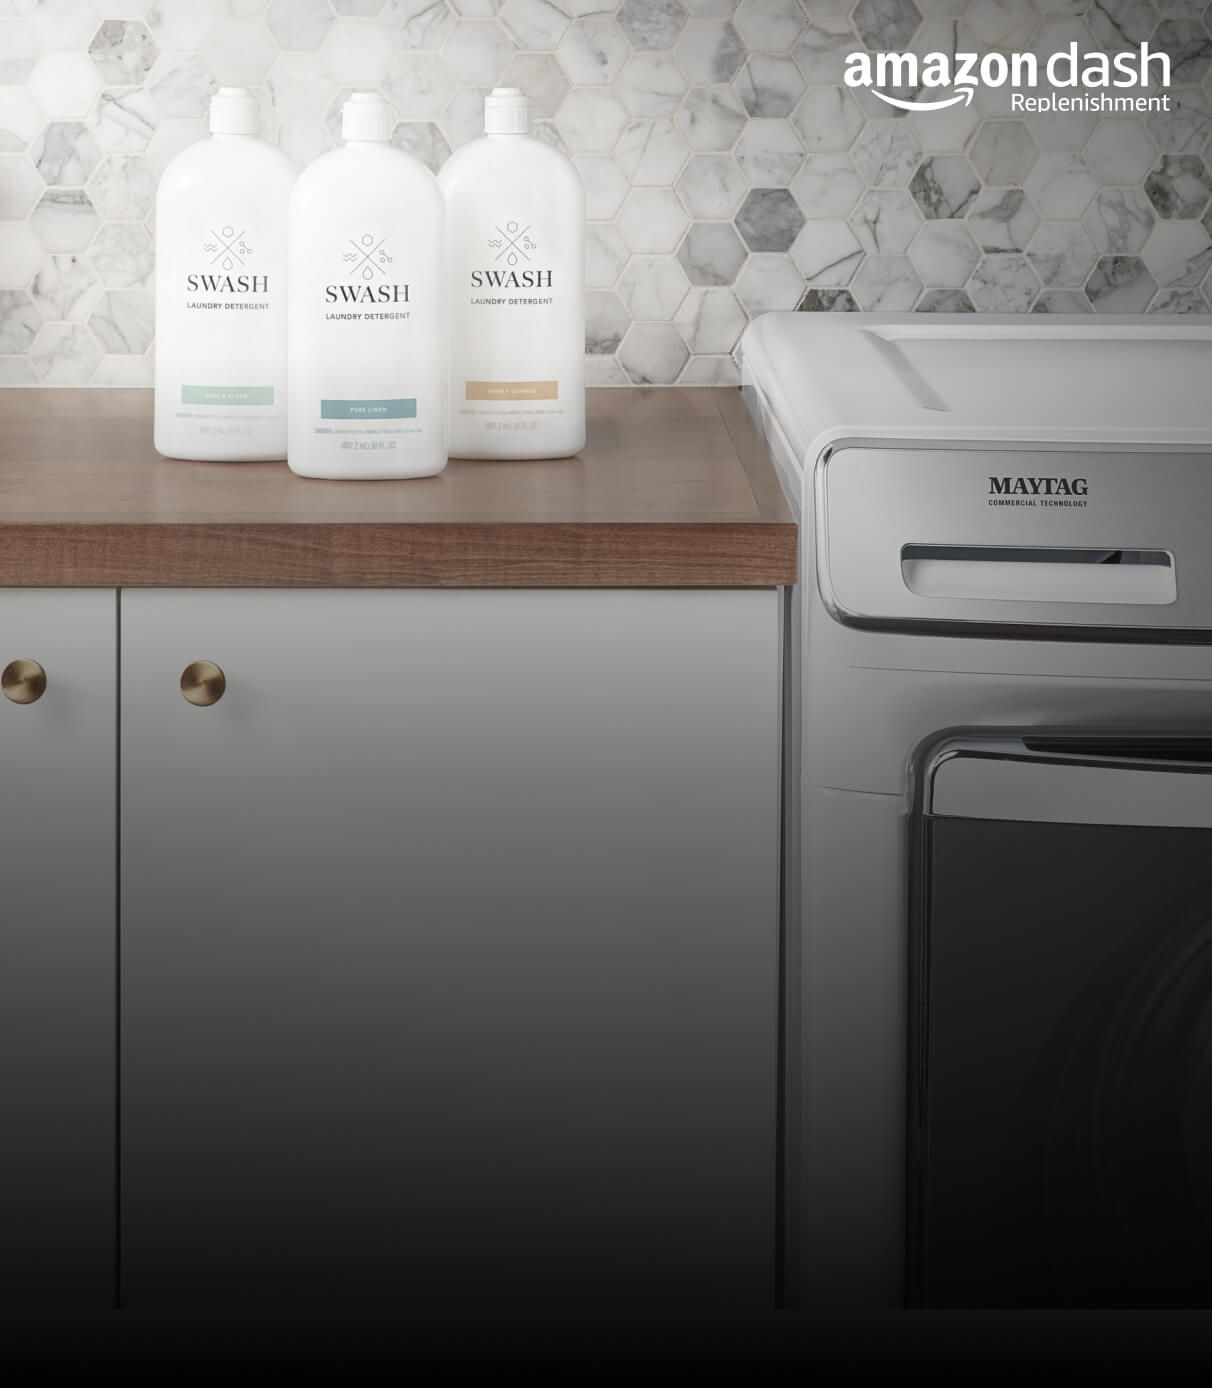 Smart Reordering for detergent and dryer sheets.